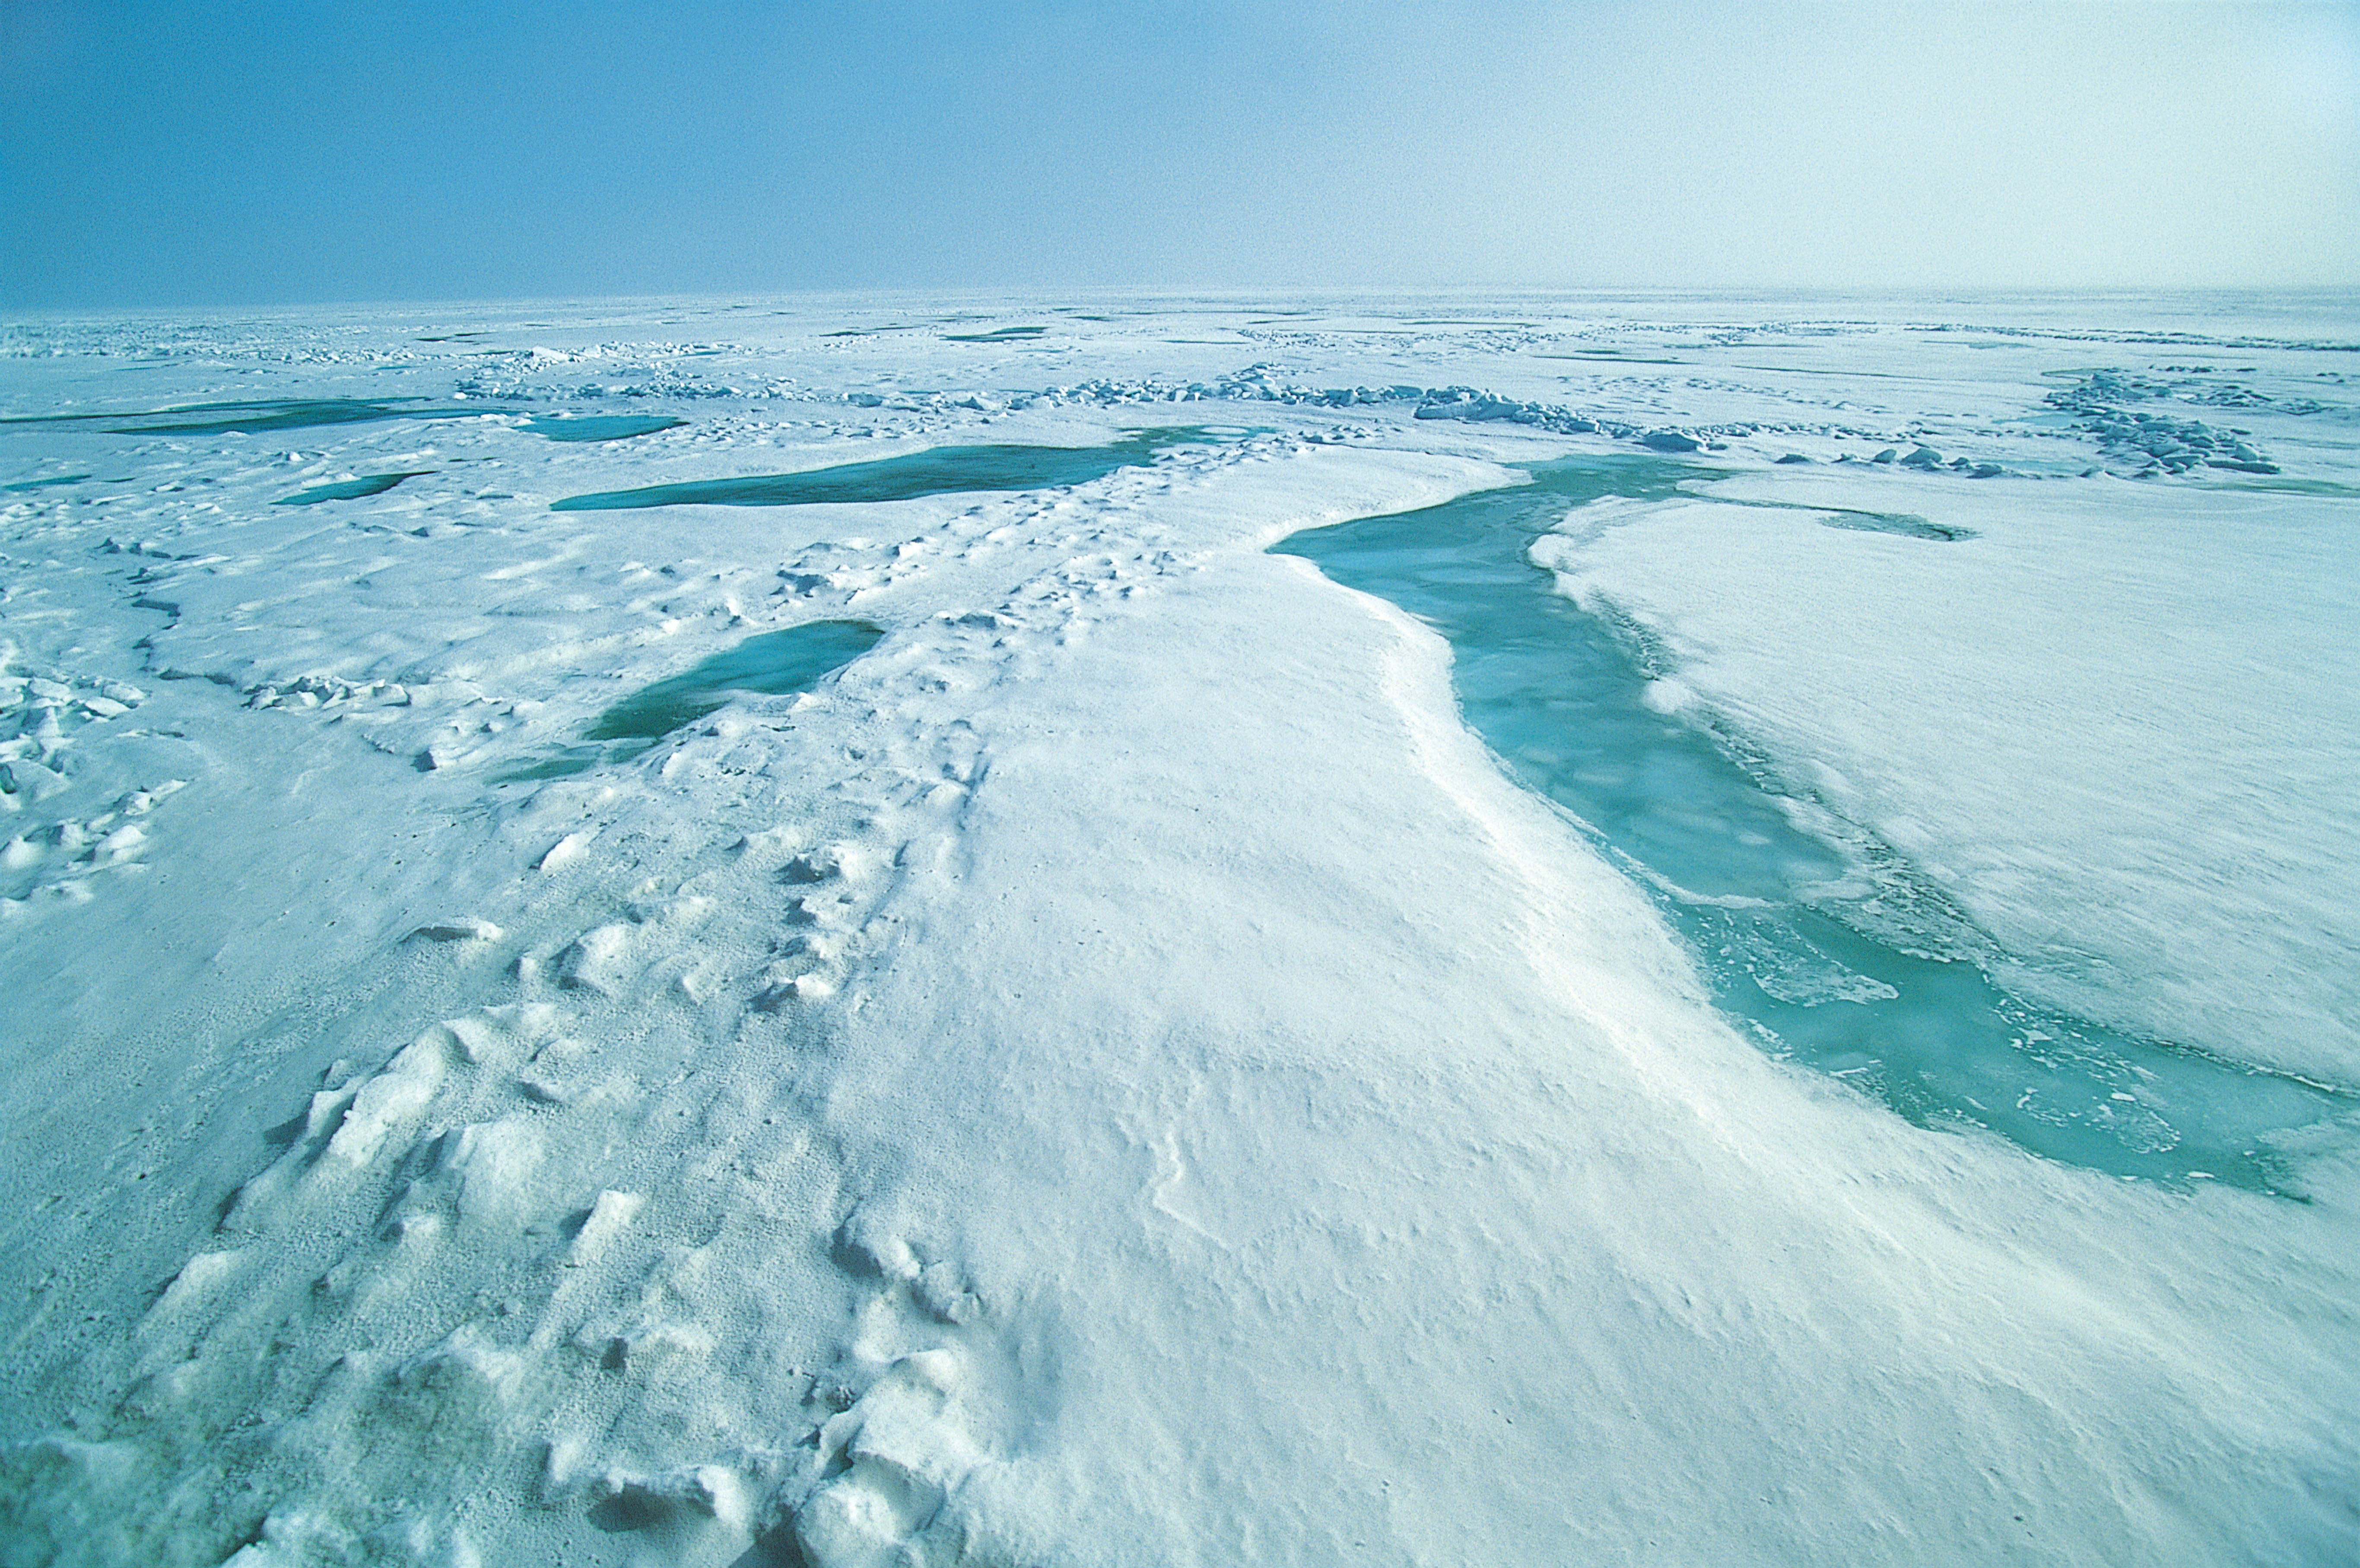 Space in Images - 2013 - 12 - Sea ice